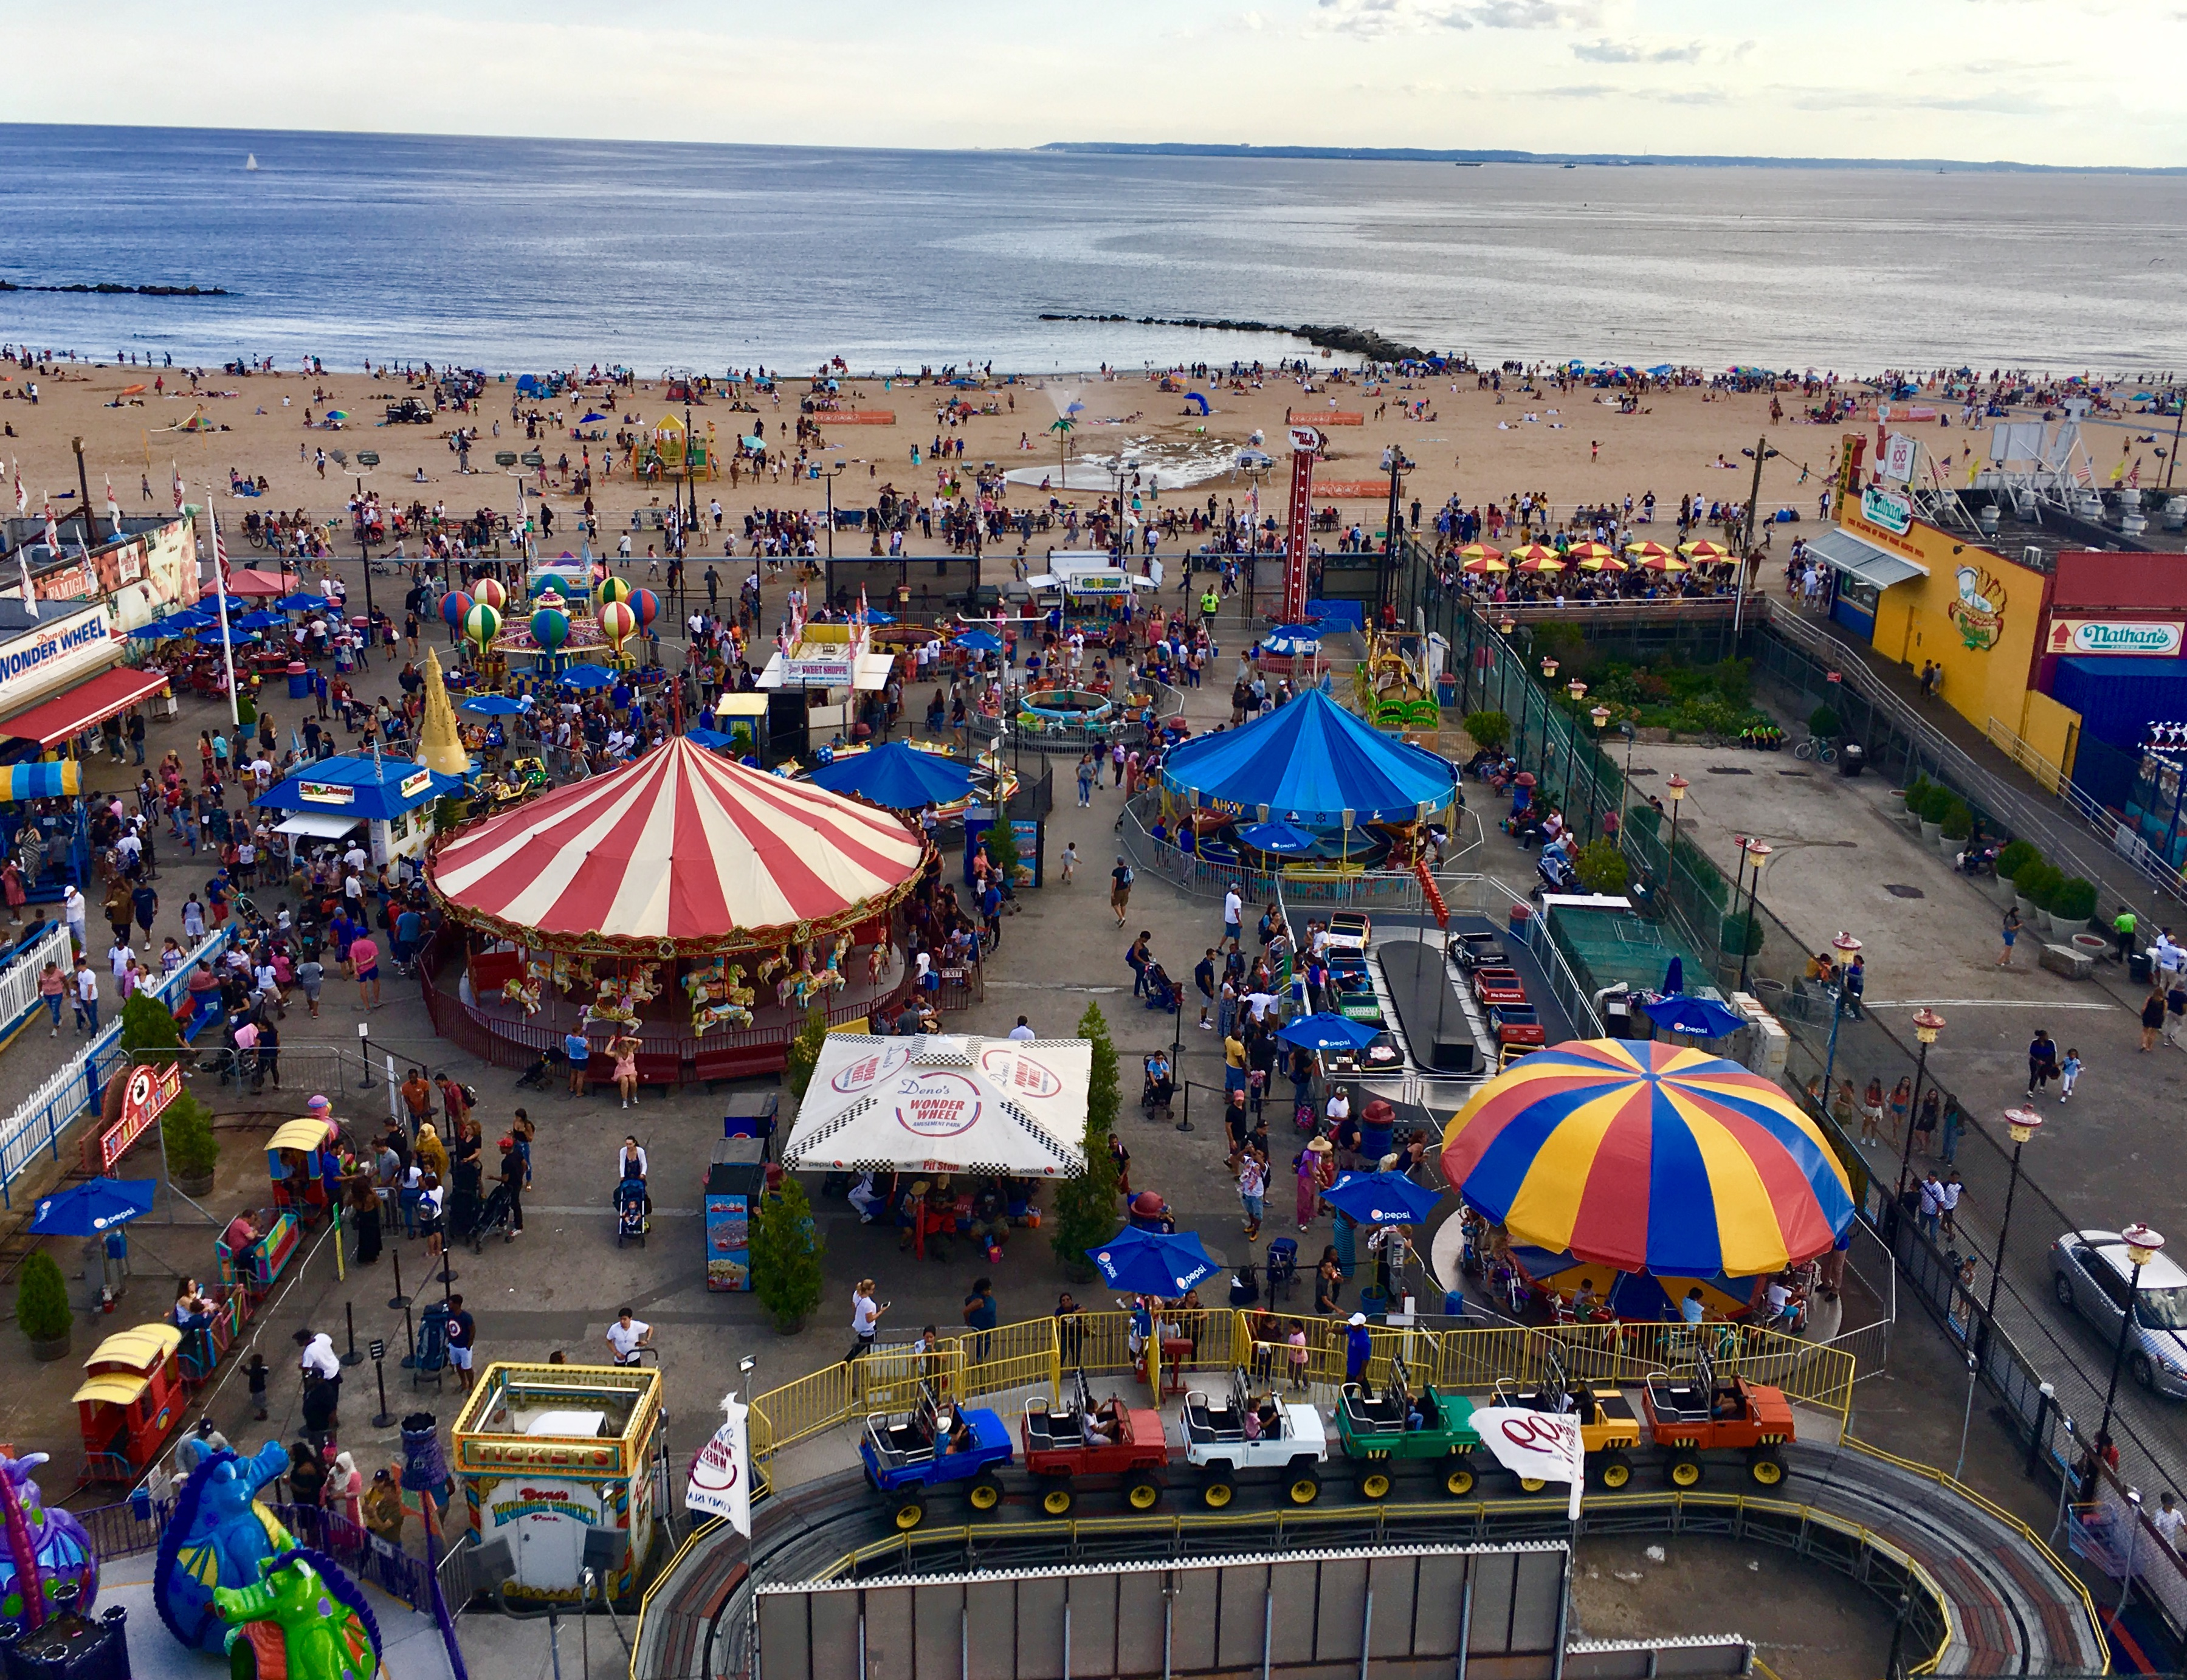 Coney Island rides look like toys when you're riding the Wonder Wheel. Eagle photo by Lore Croghan